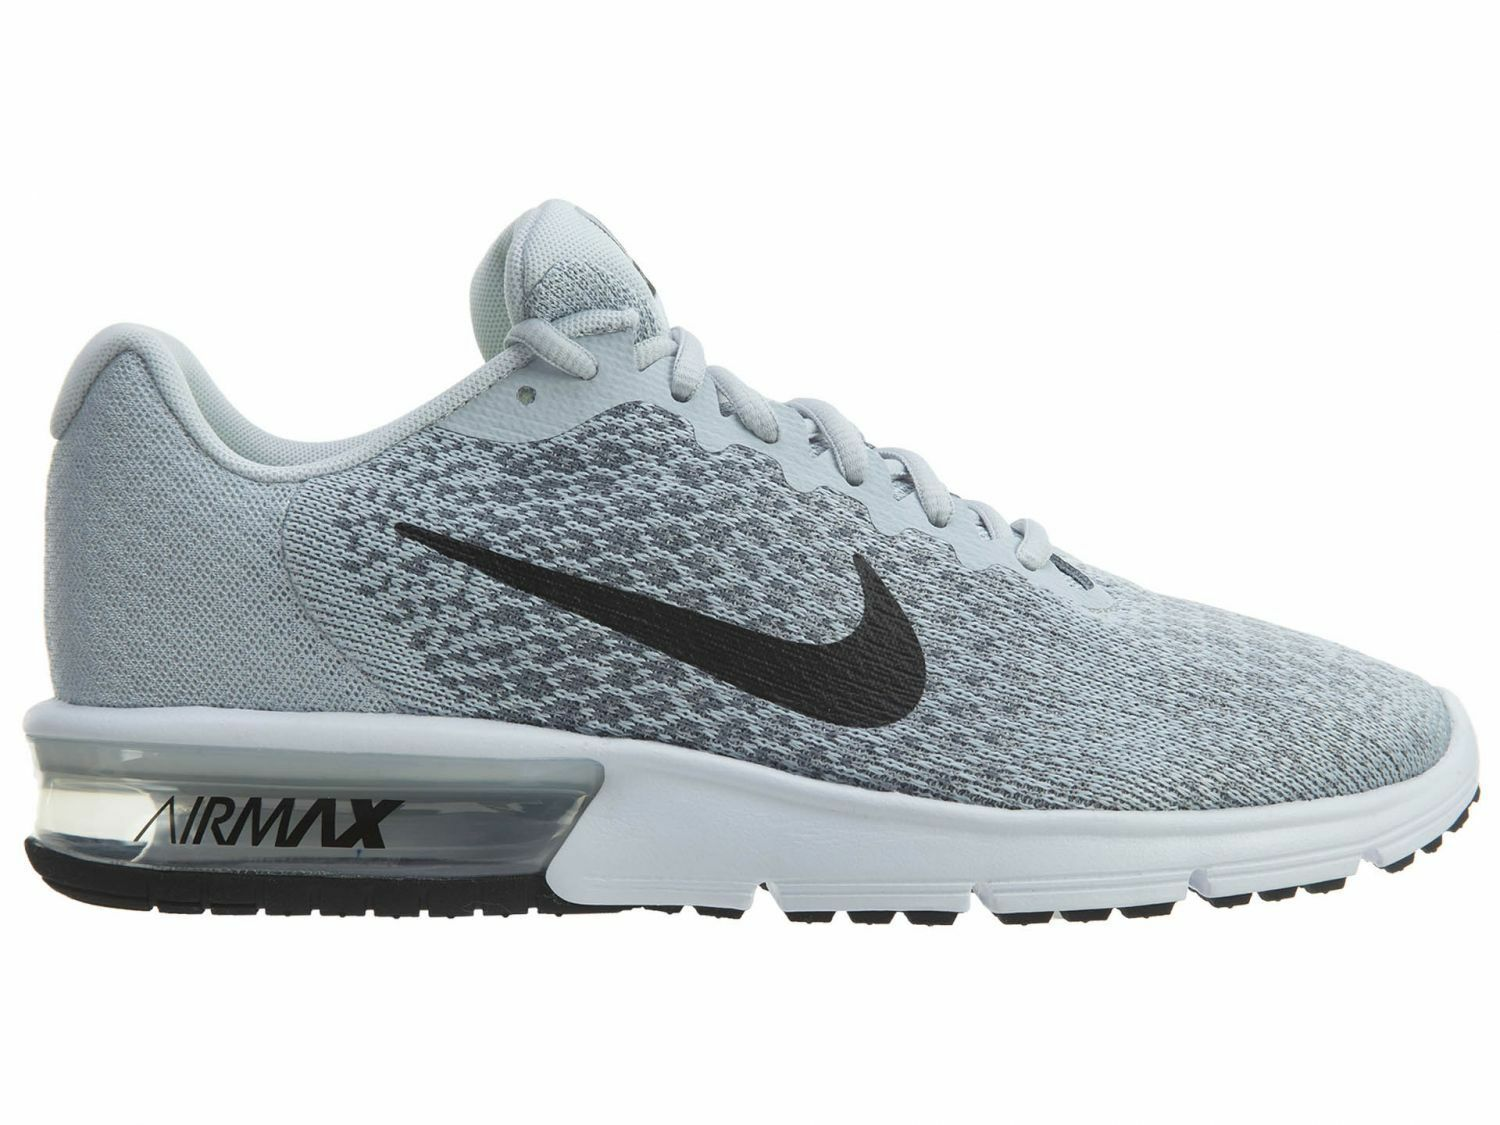 Nike Air Max Sequent Grey 2 Mens 852461-002 Platinum Grey Sequent Knit Running Shoes Size 6.5 187e7d